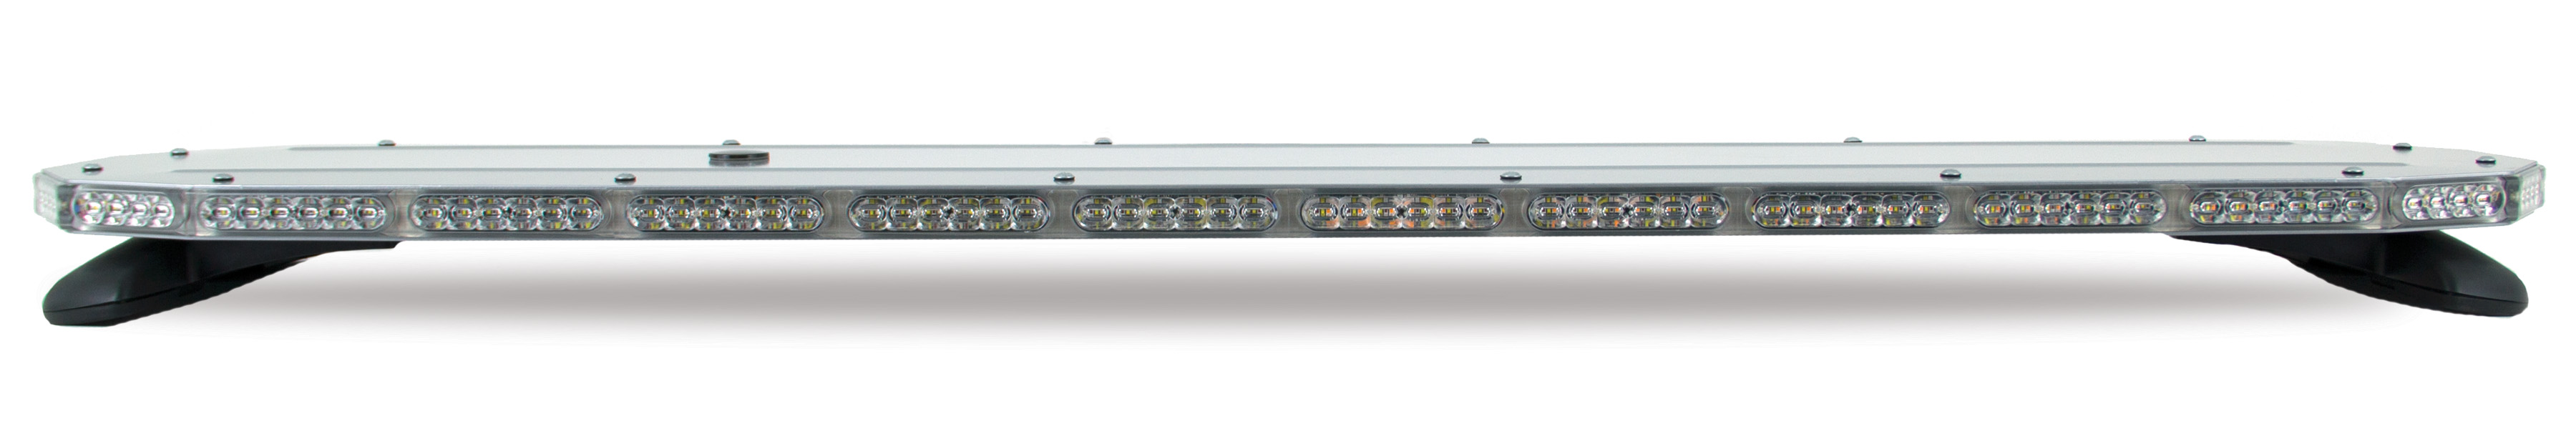 mpower® Exterior Full Size Lightbar Product Image